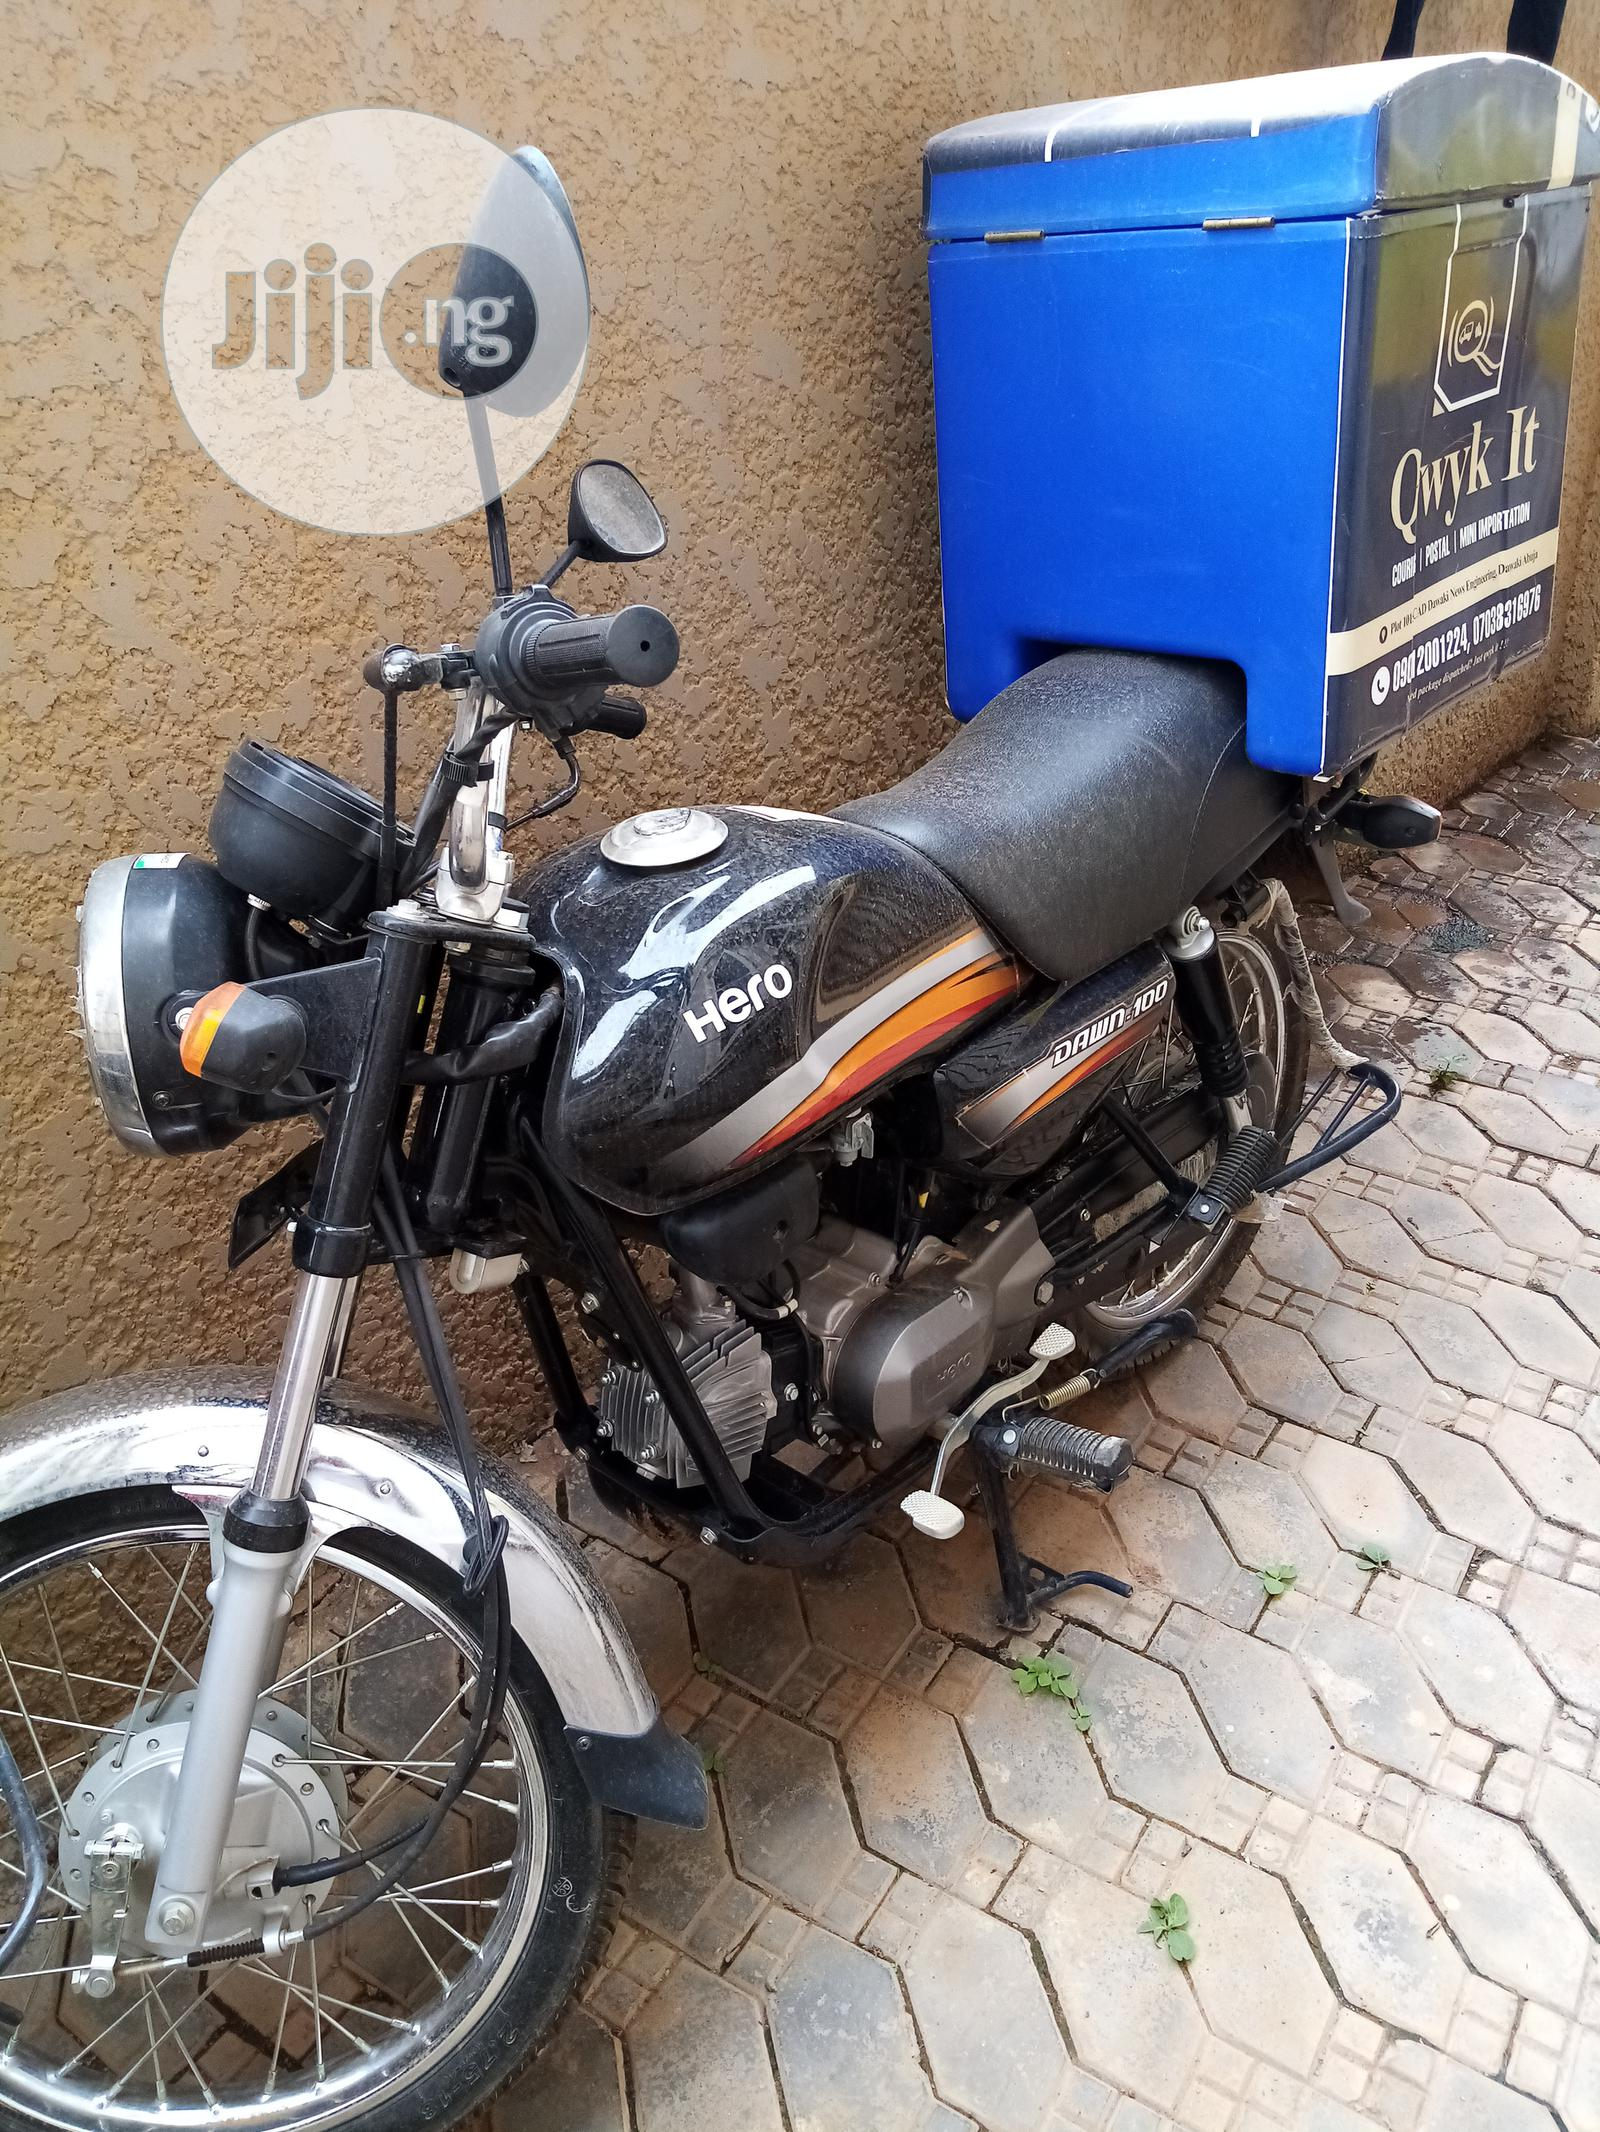 Riders Interested In Hire Purchase For Logistic Bike | Logistics & Transportation Jobs for sale in Gwarinpa, Abuja (FCT) State, Nigeria